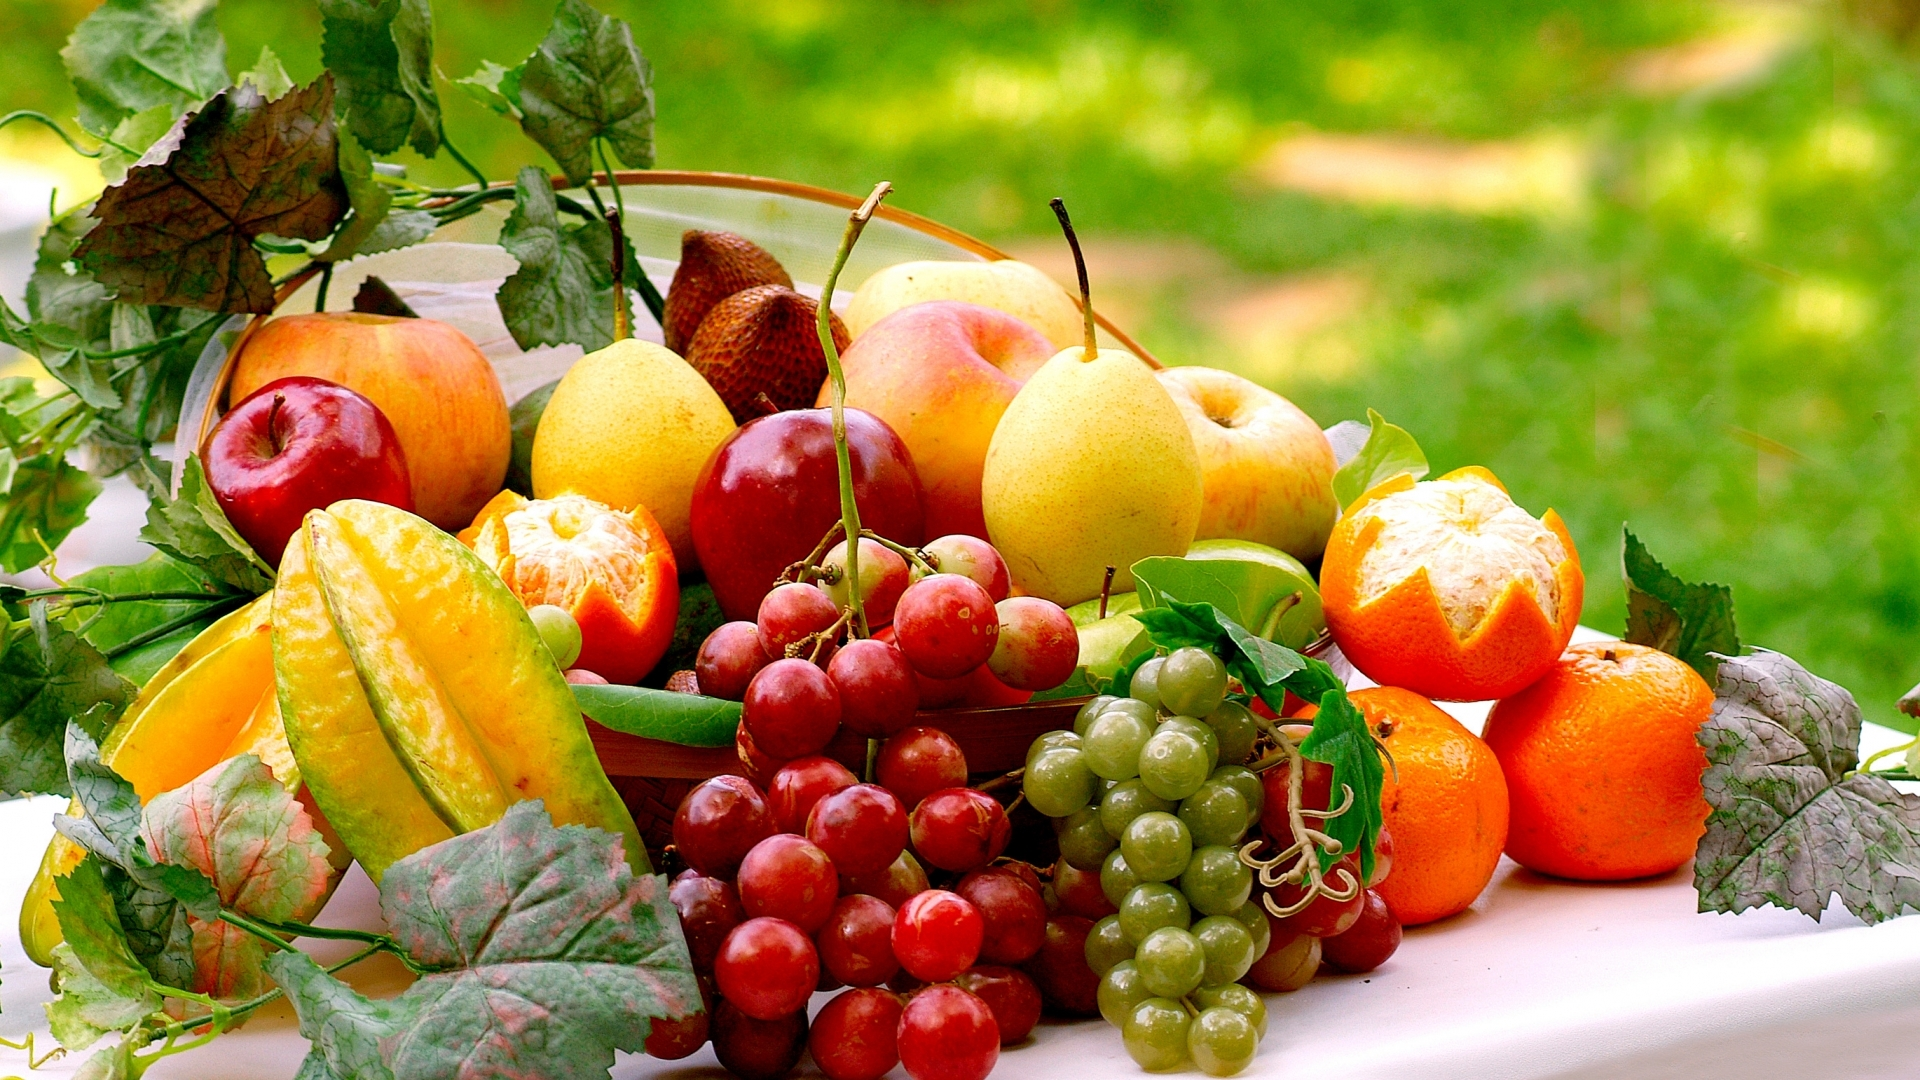 Fruits hd images - Fruits Background